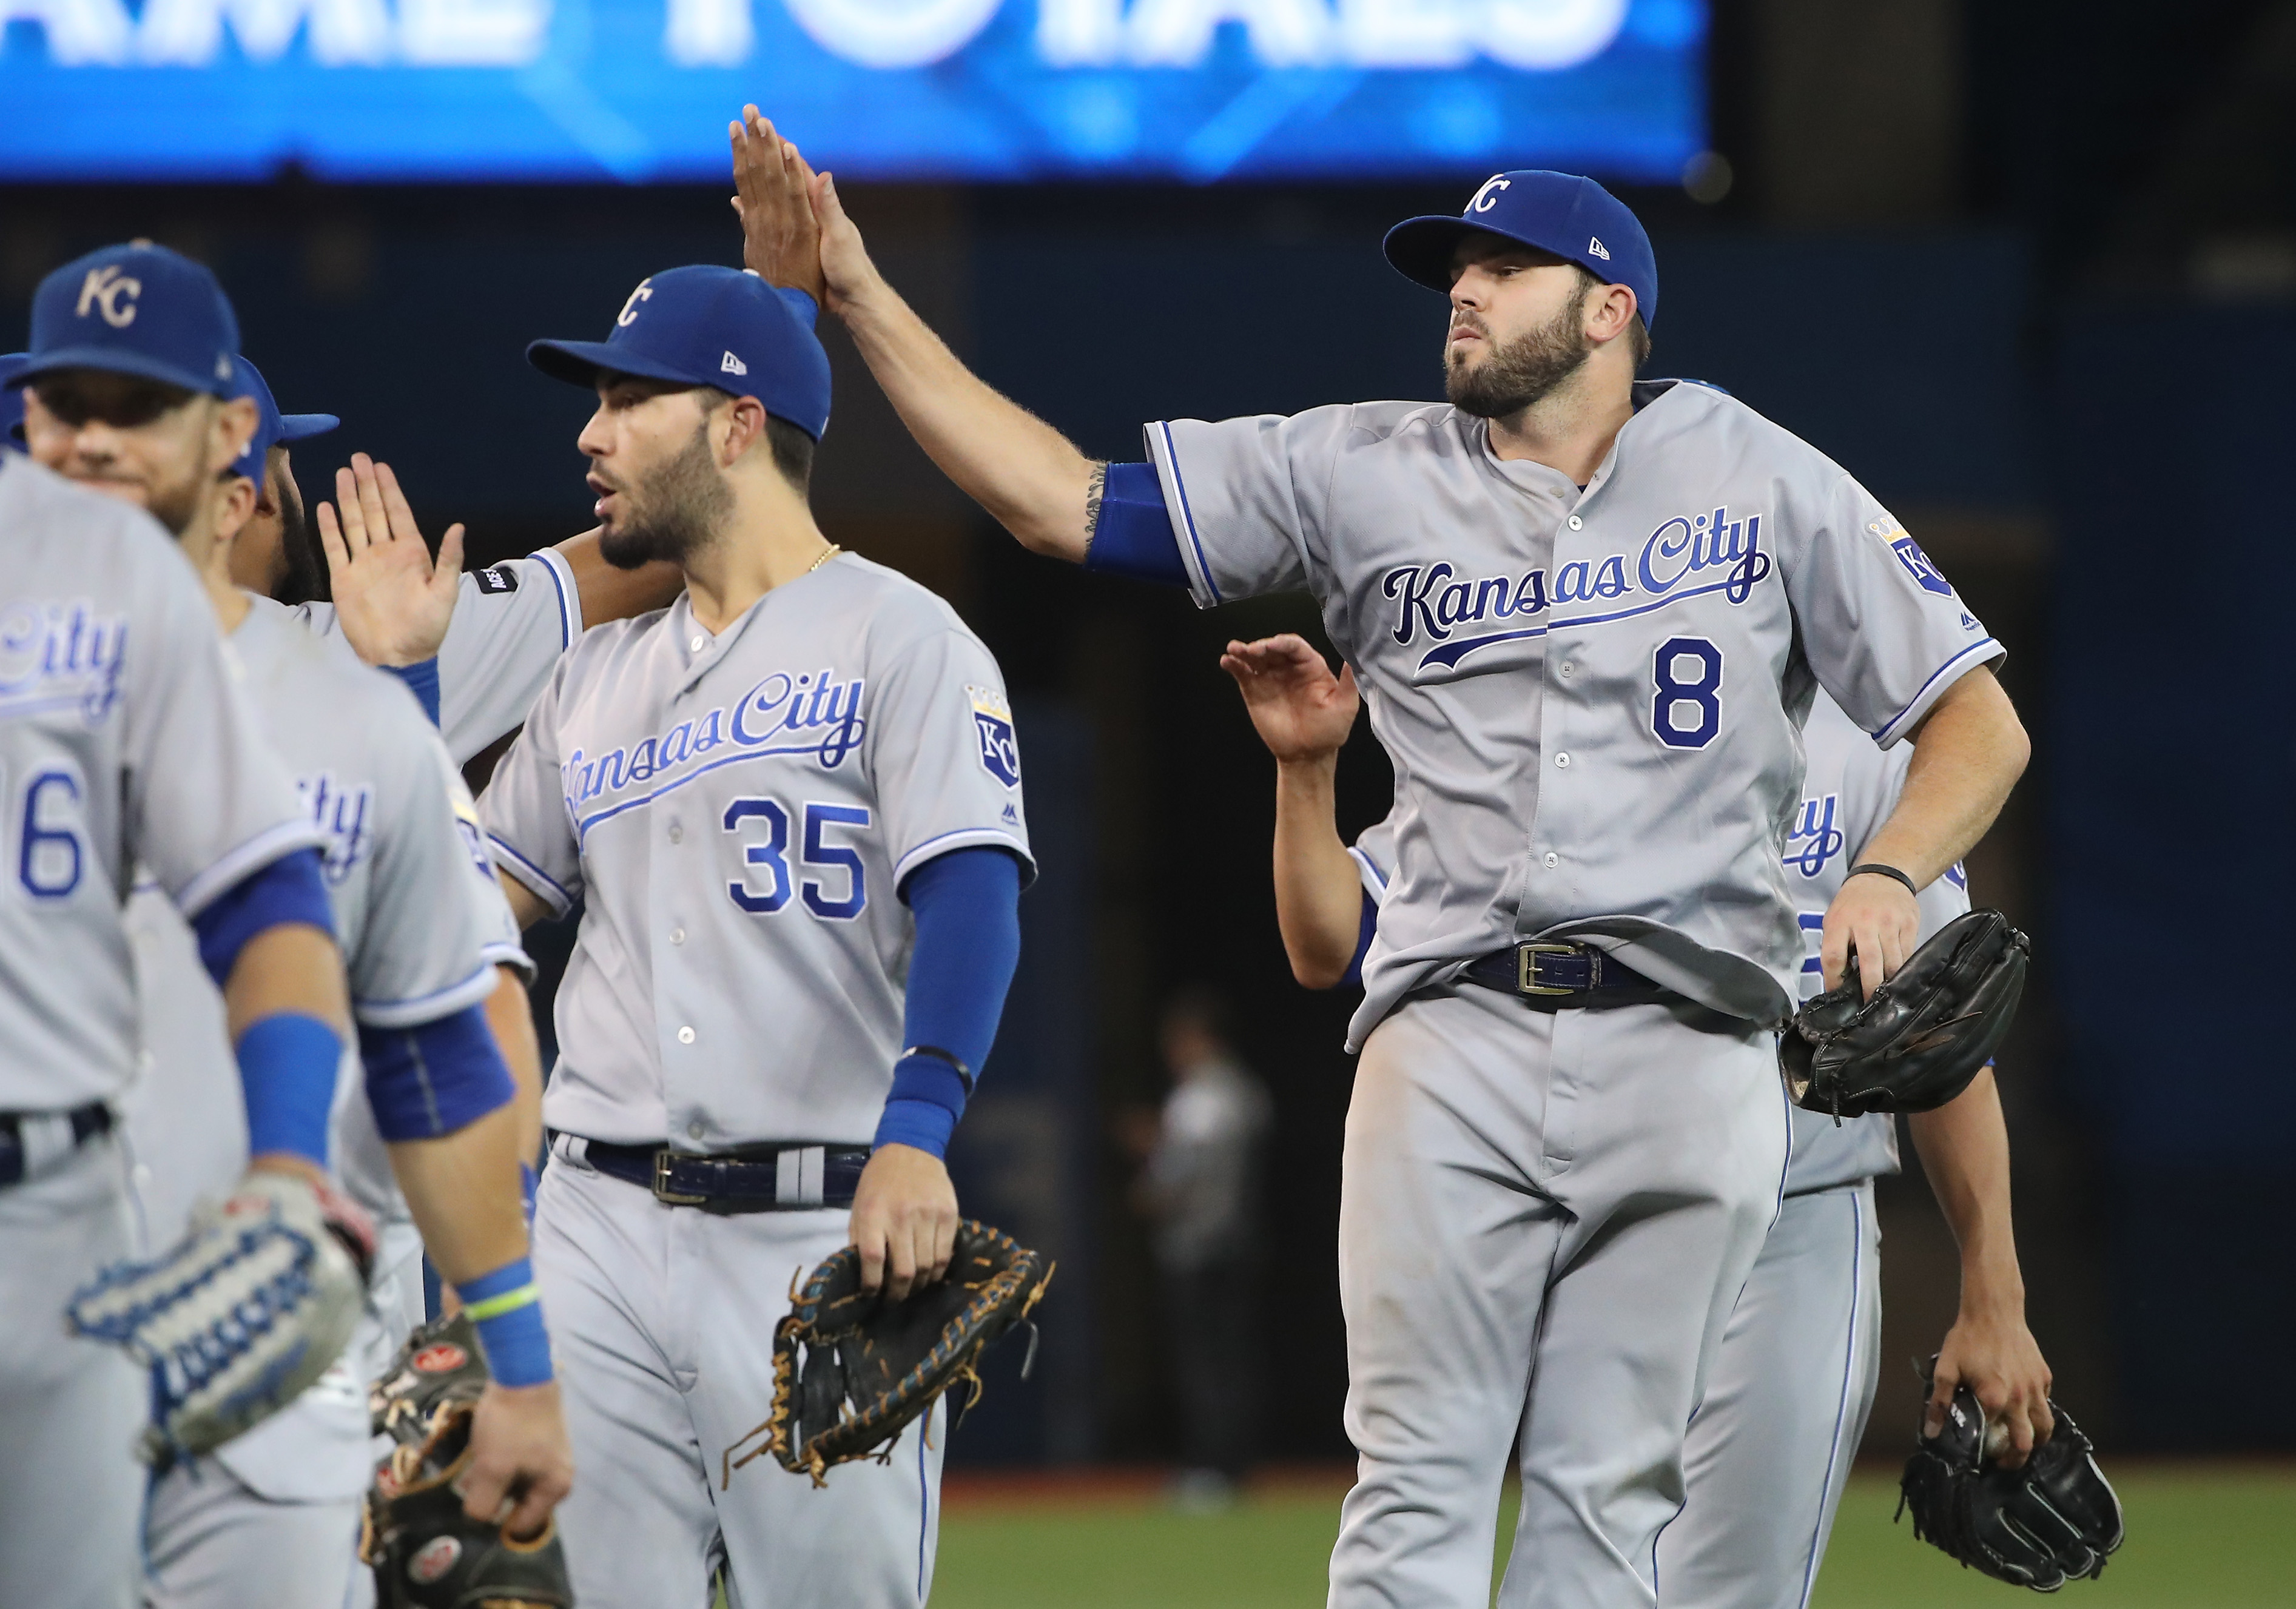 Moustakas named Comeback Player of the Year, Royals manager injured